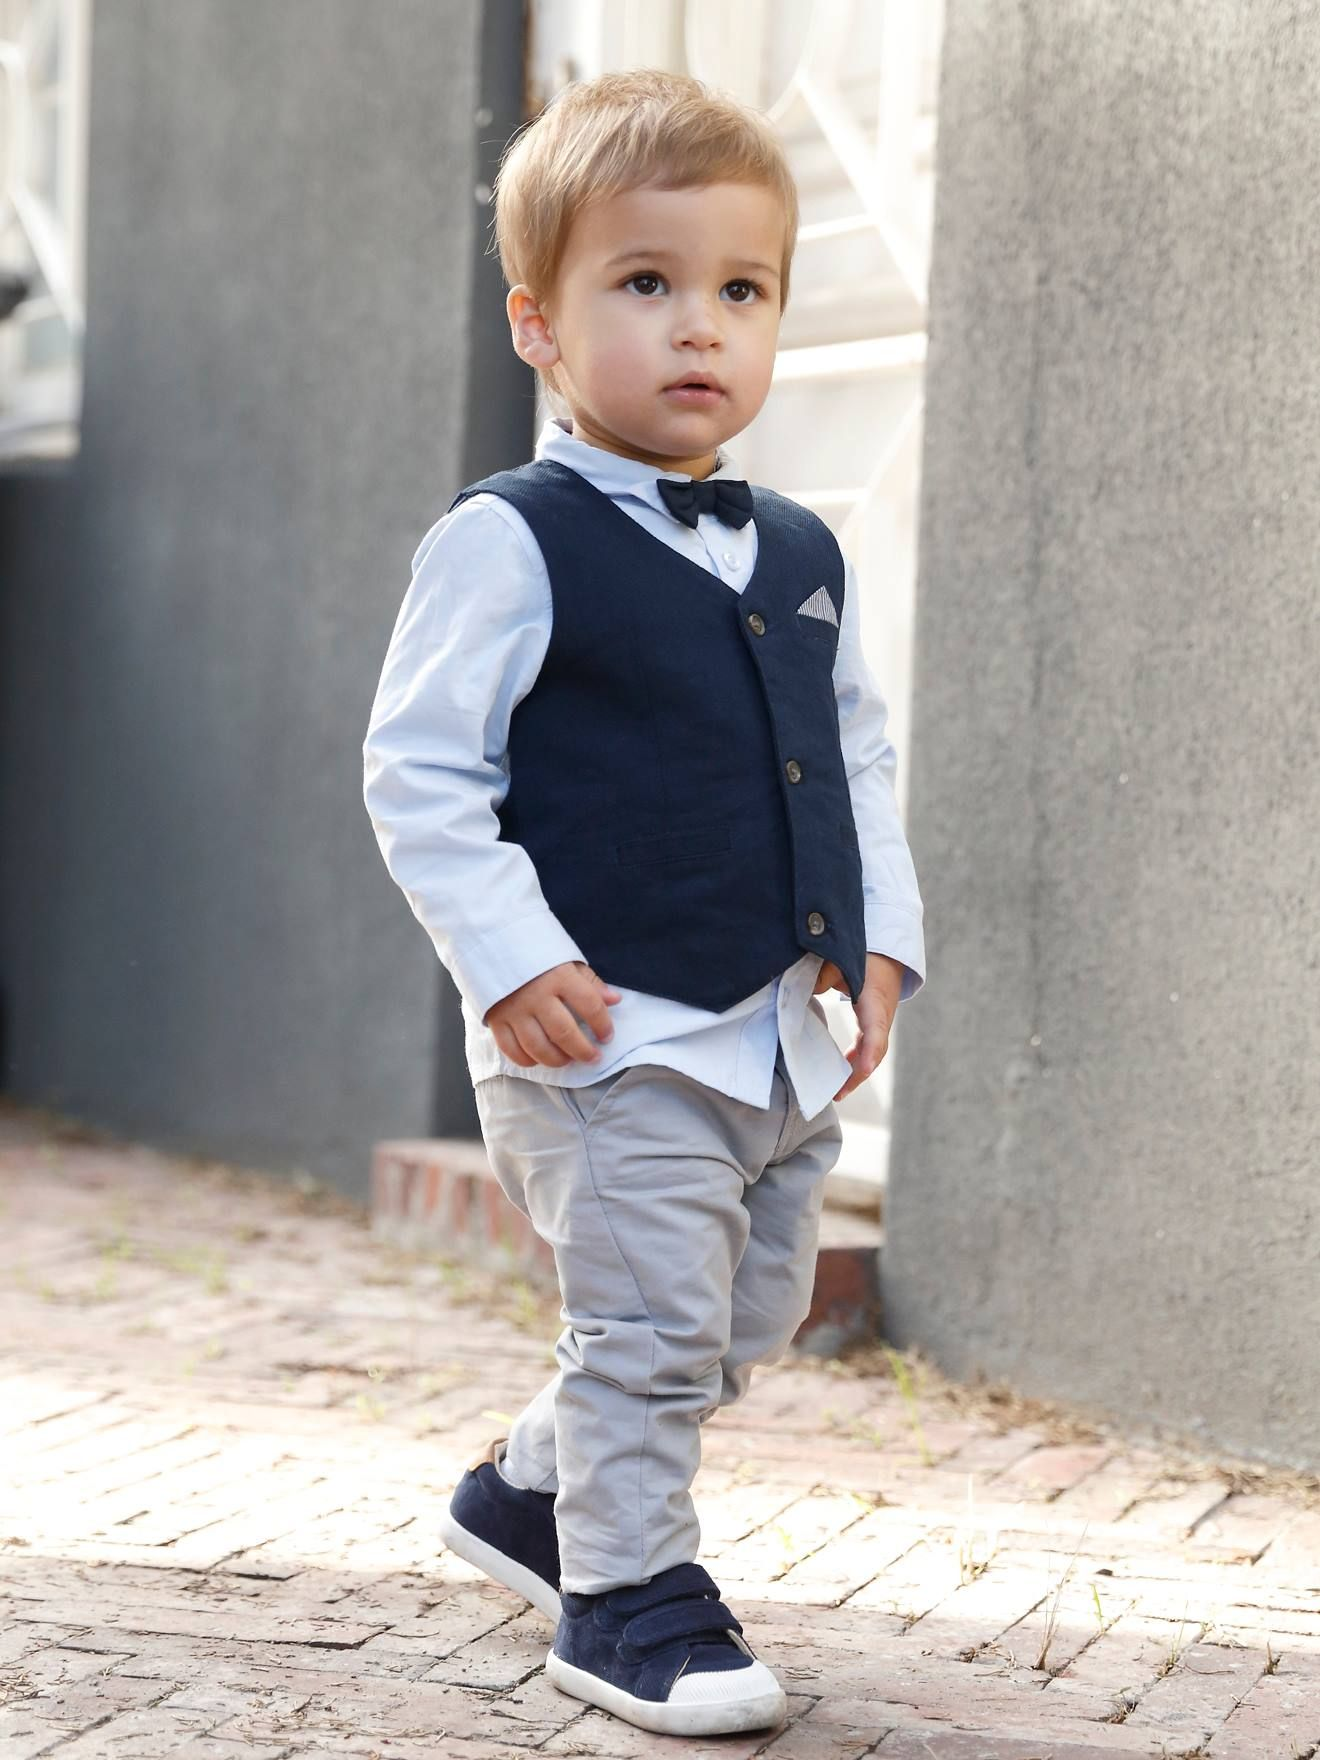 Occasion Wear Outfit : Waistcoat + Shirt + Bow Tie + Trousers, for